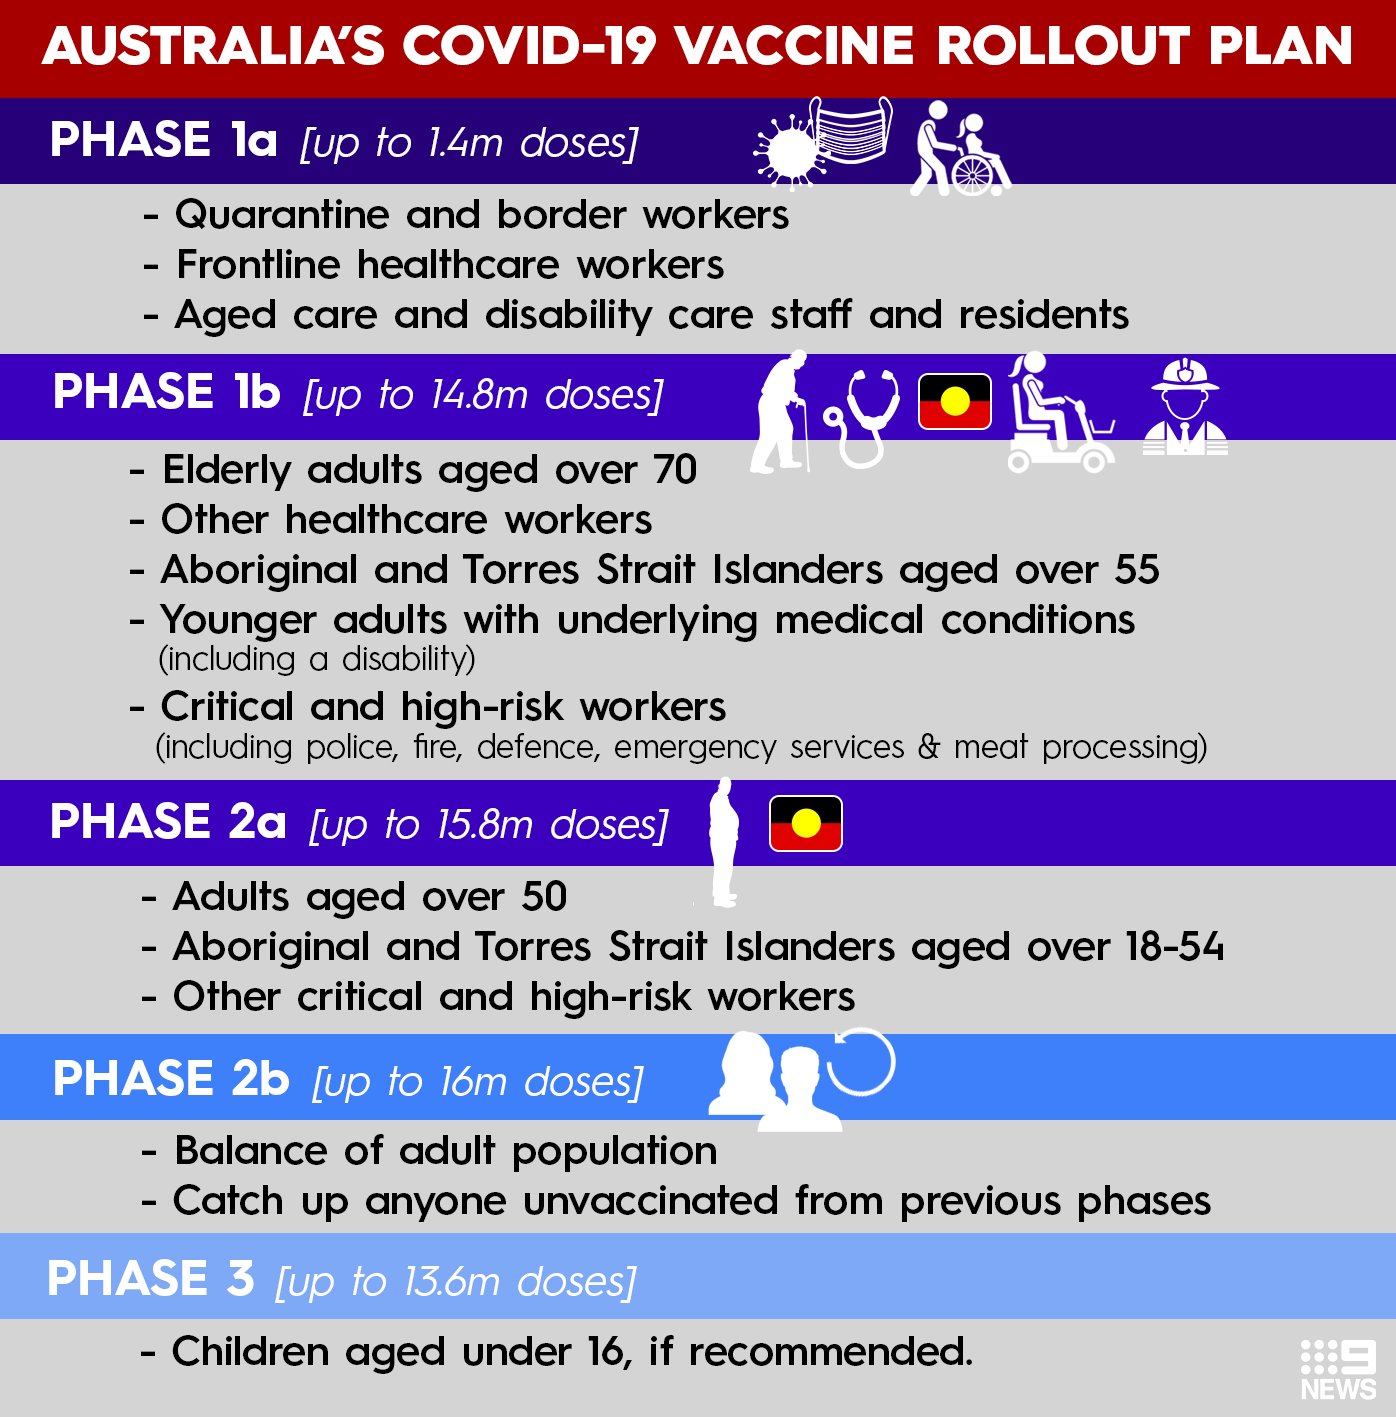 Australia's vaccine rollout is broken down into phases.